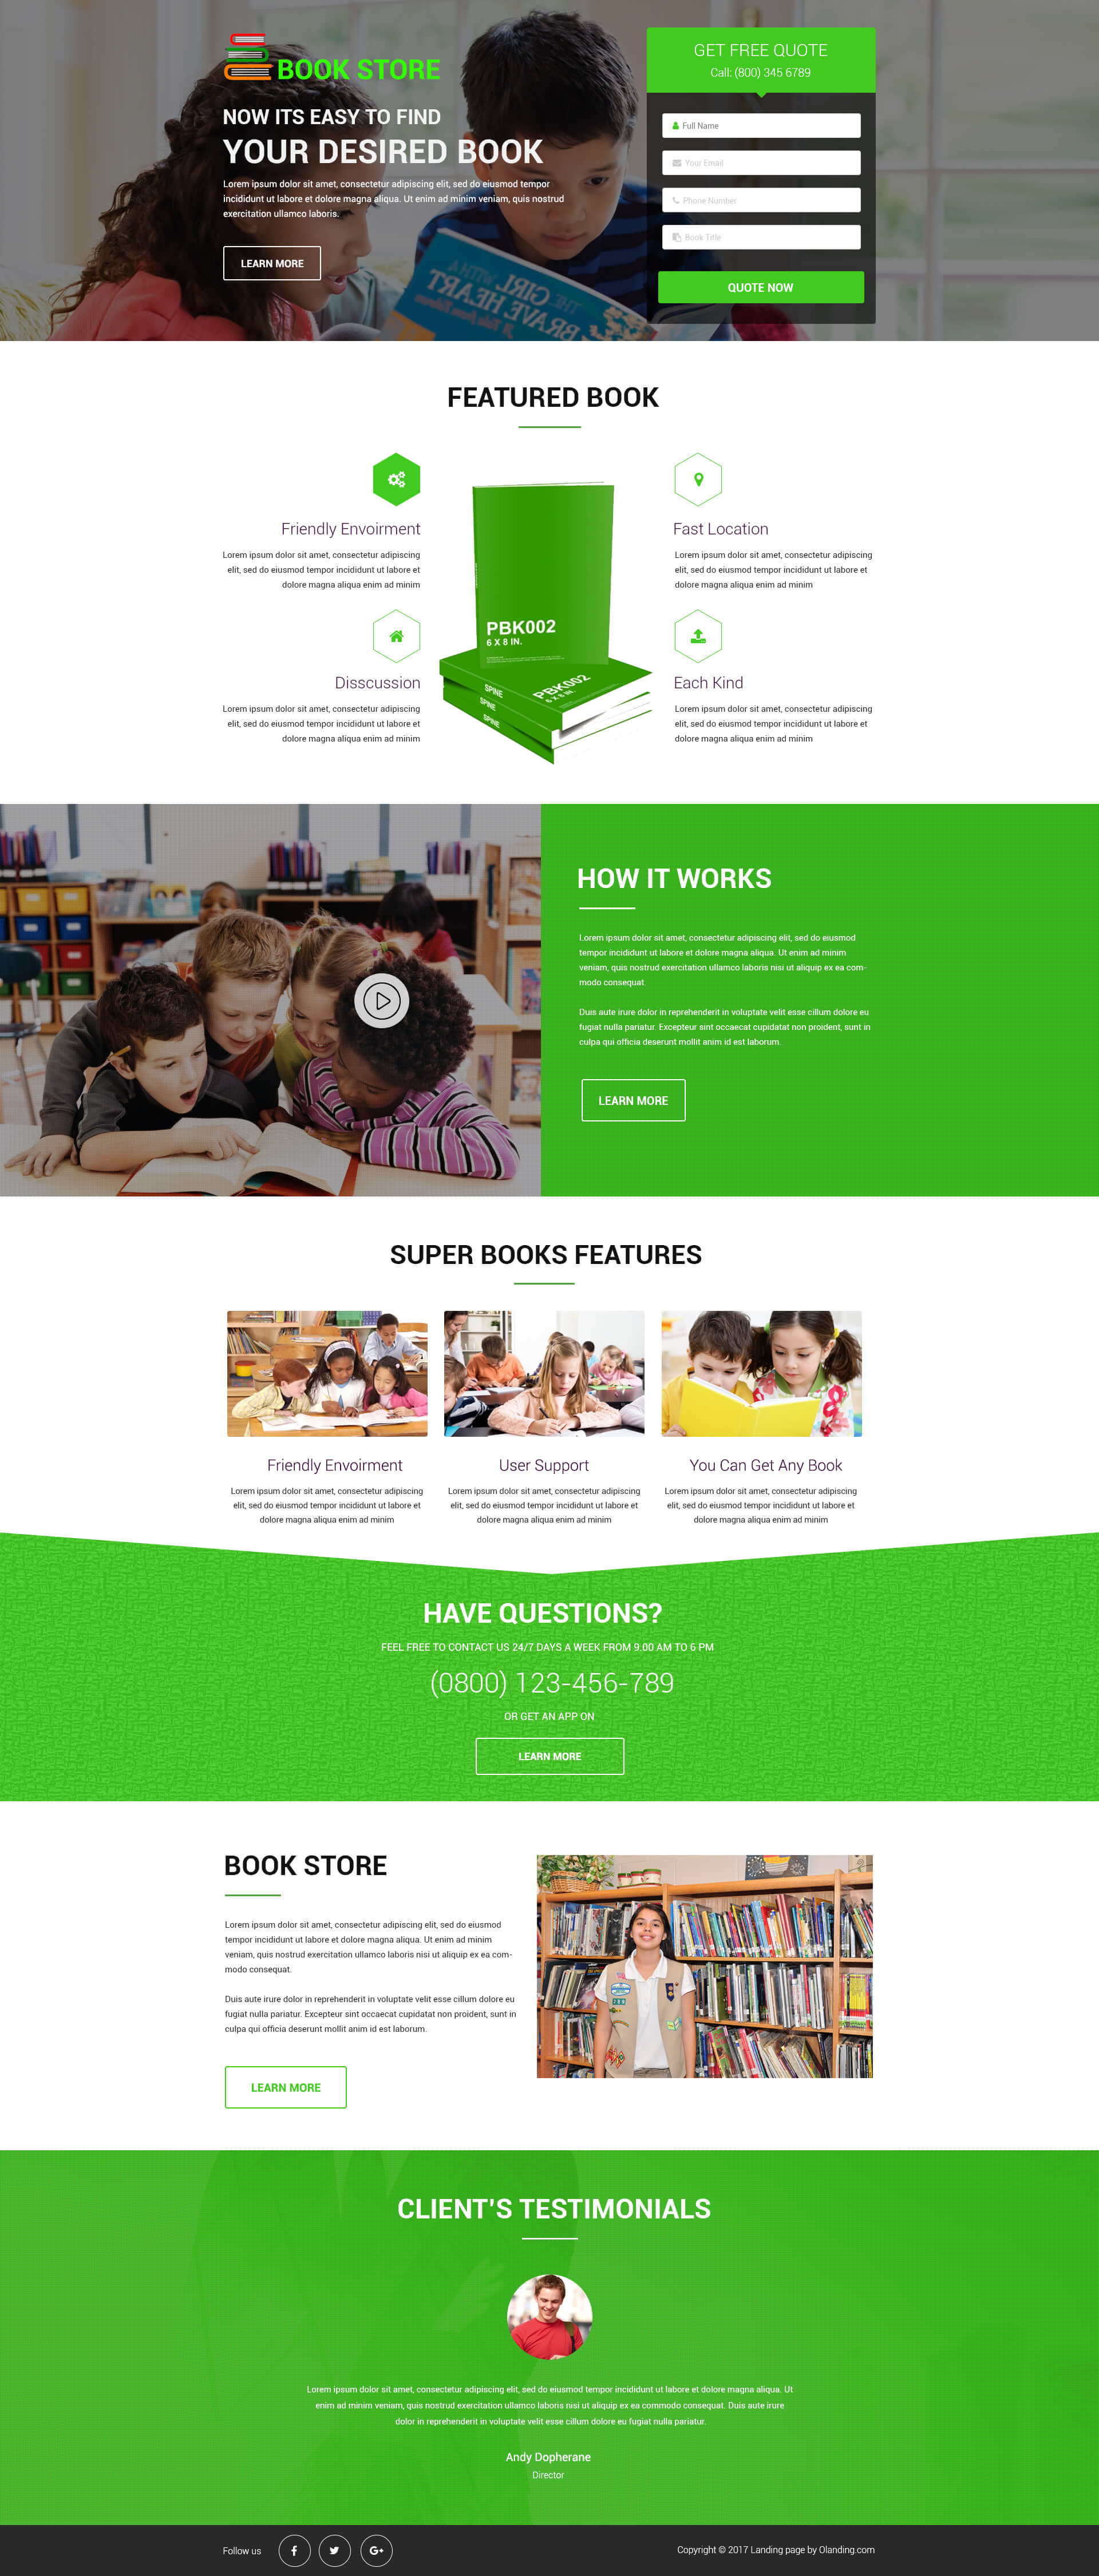 book store landing page design template to increase your online book